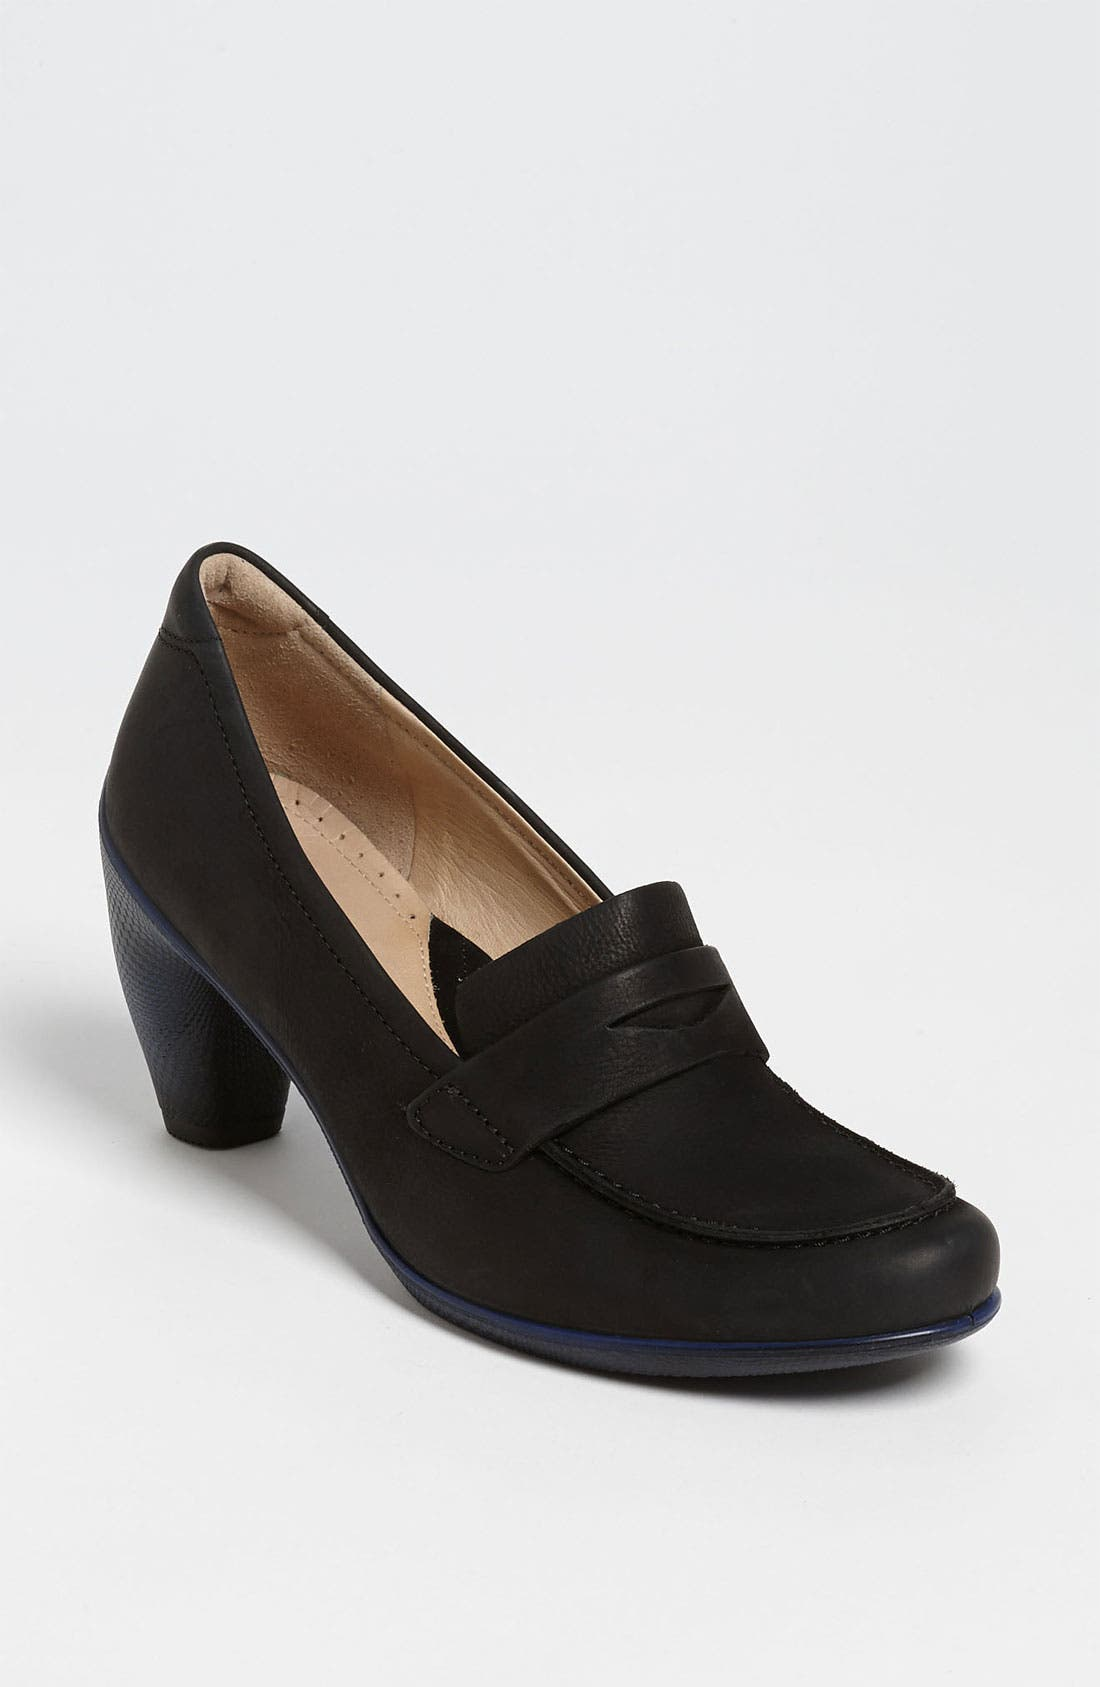 Main Image - ECCO 'Sculptured 65 College' Penny Loafer Pump